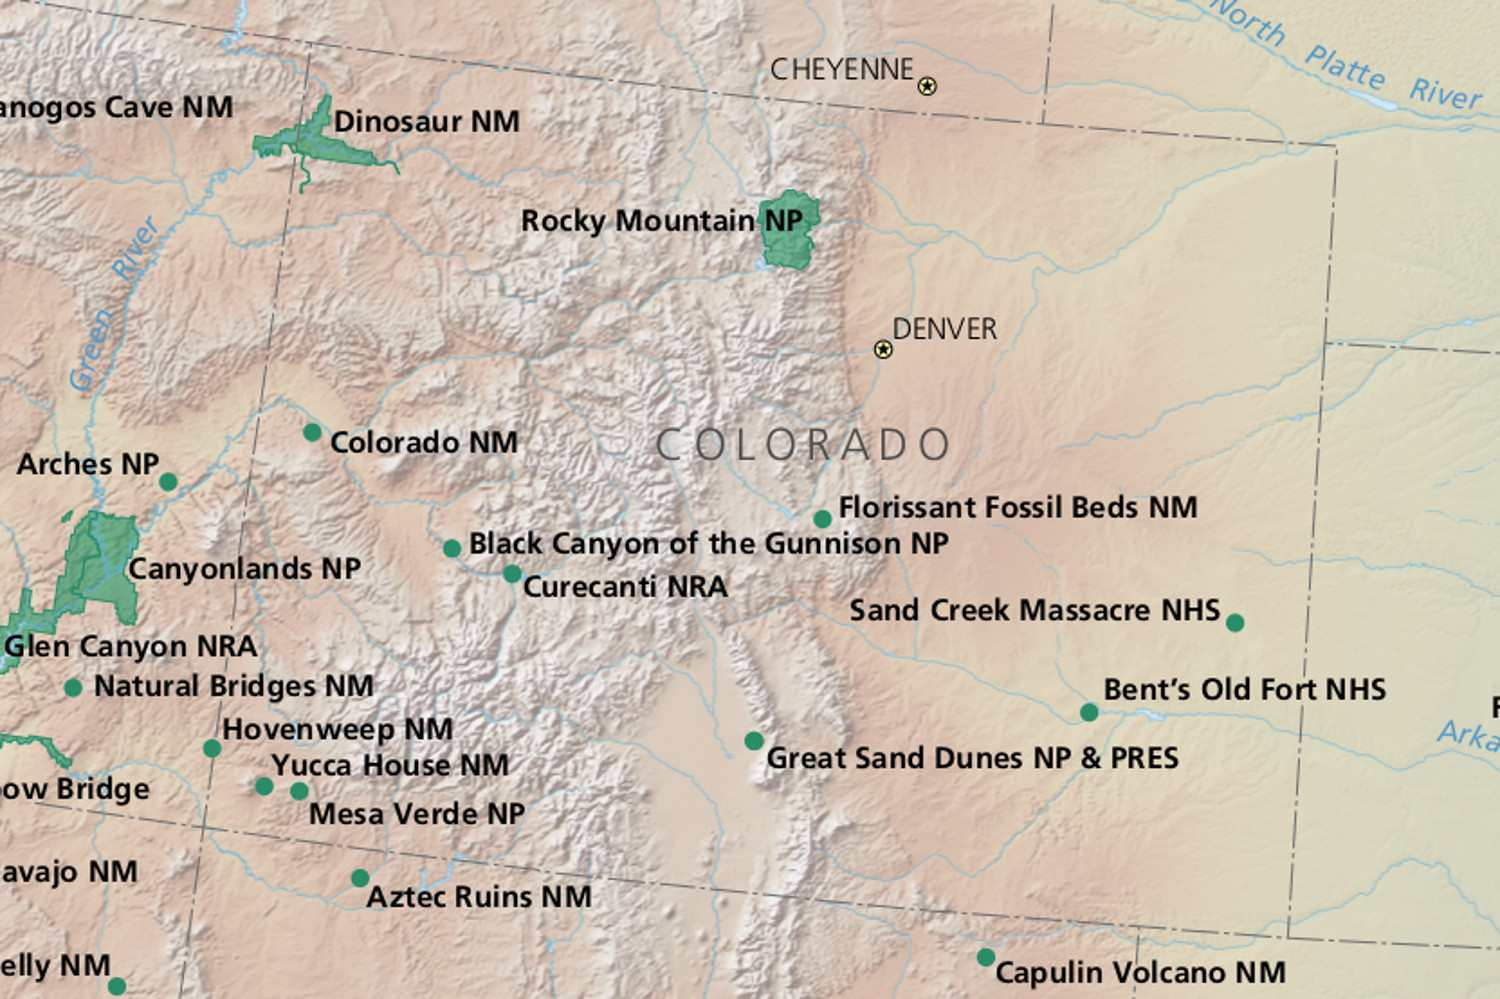 Colorado National Parks: Rocky Mountains, Deep Canyons